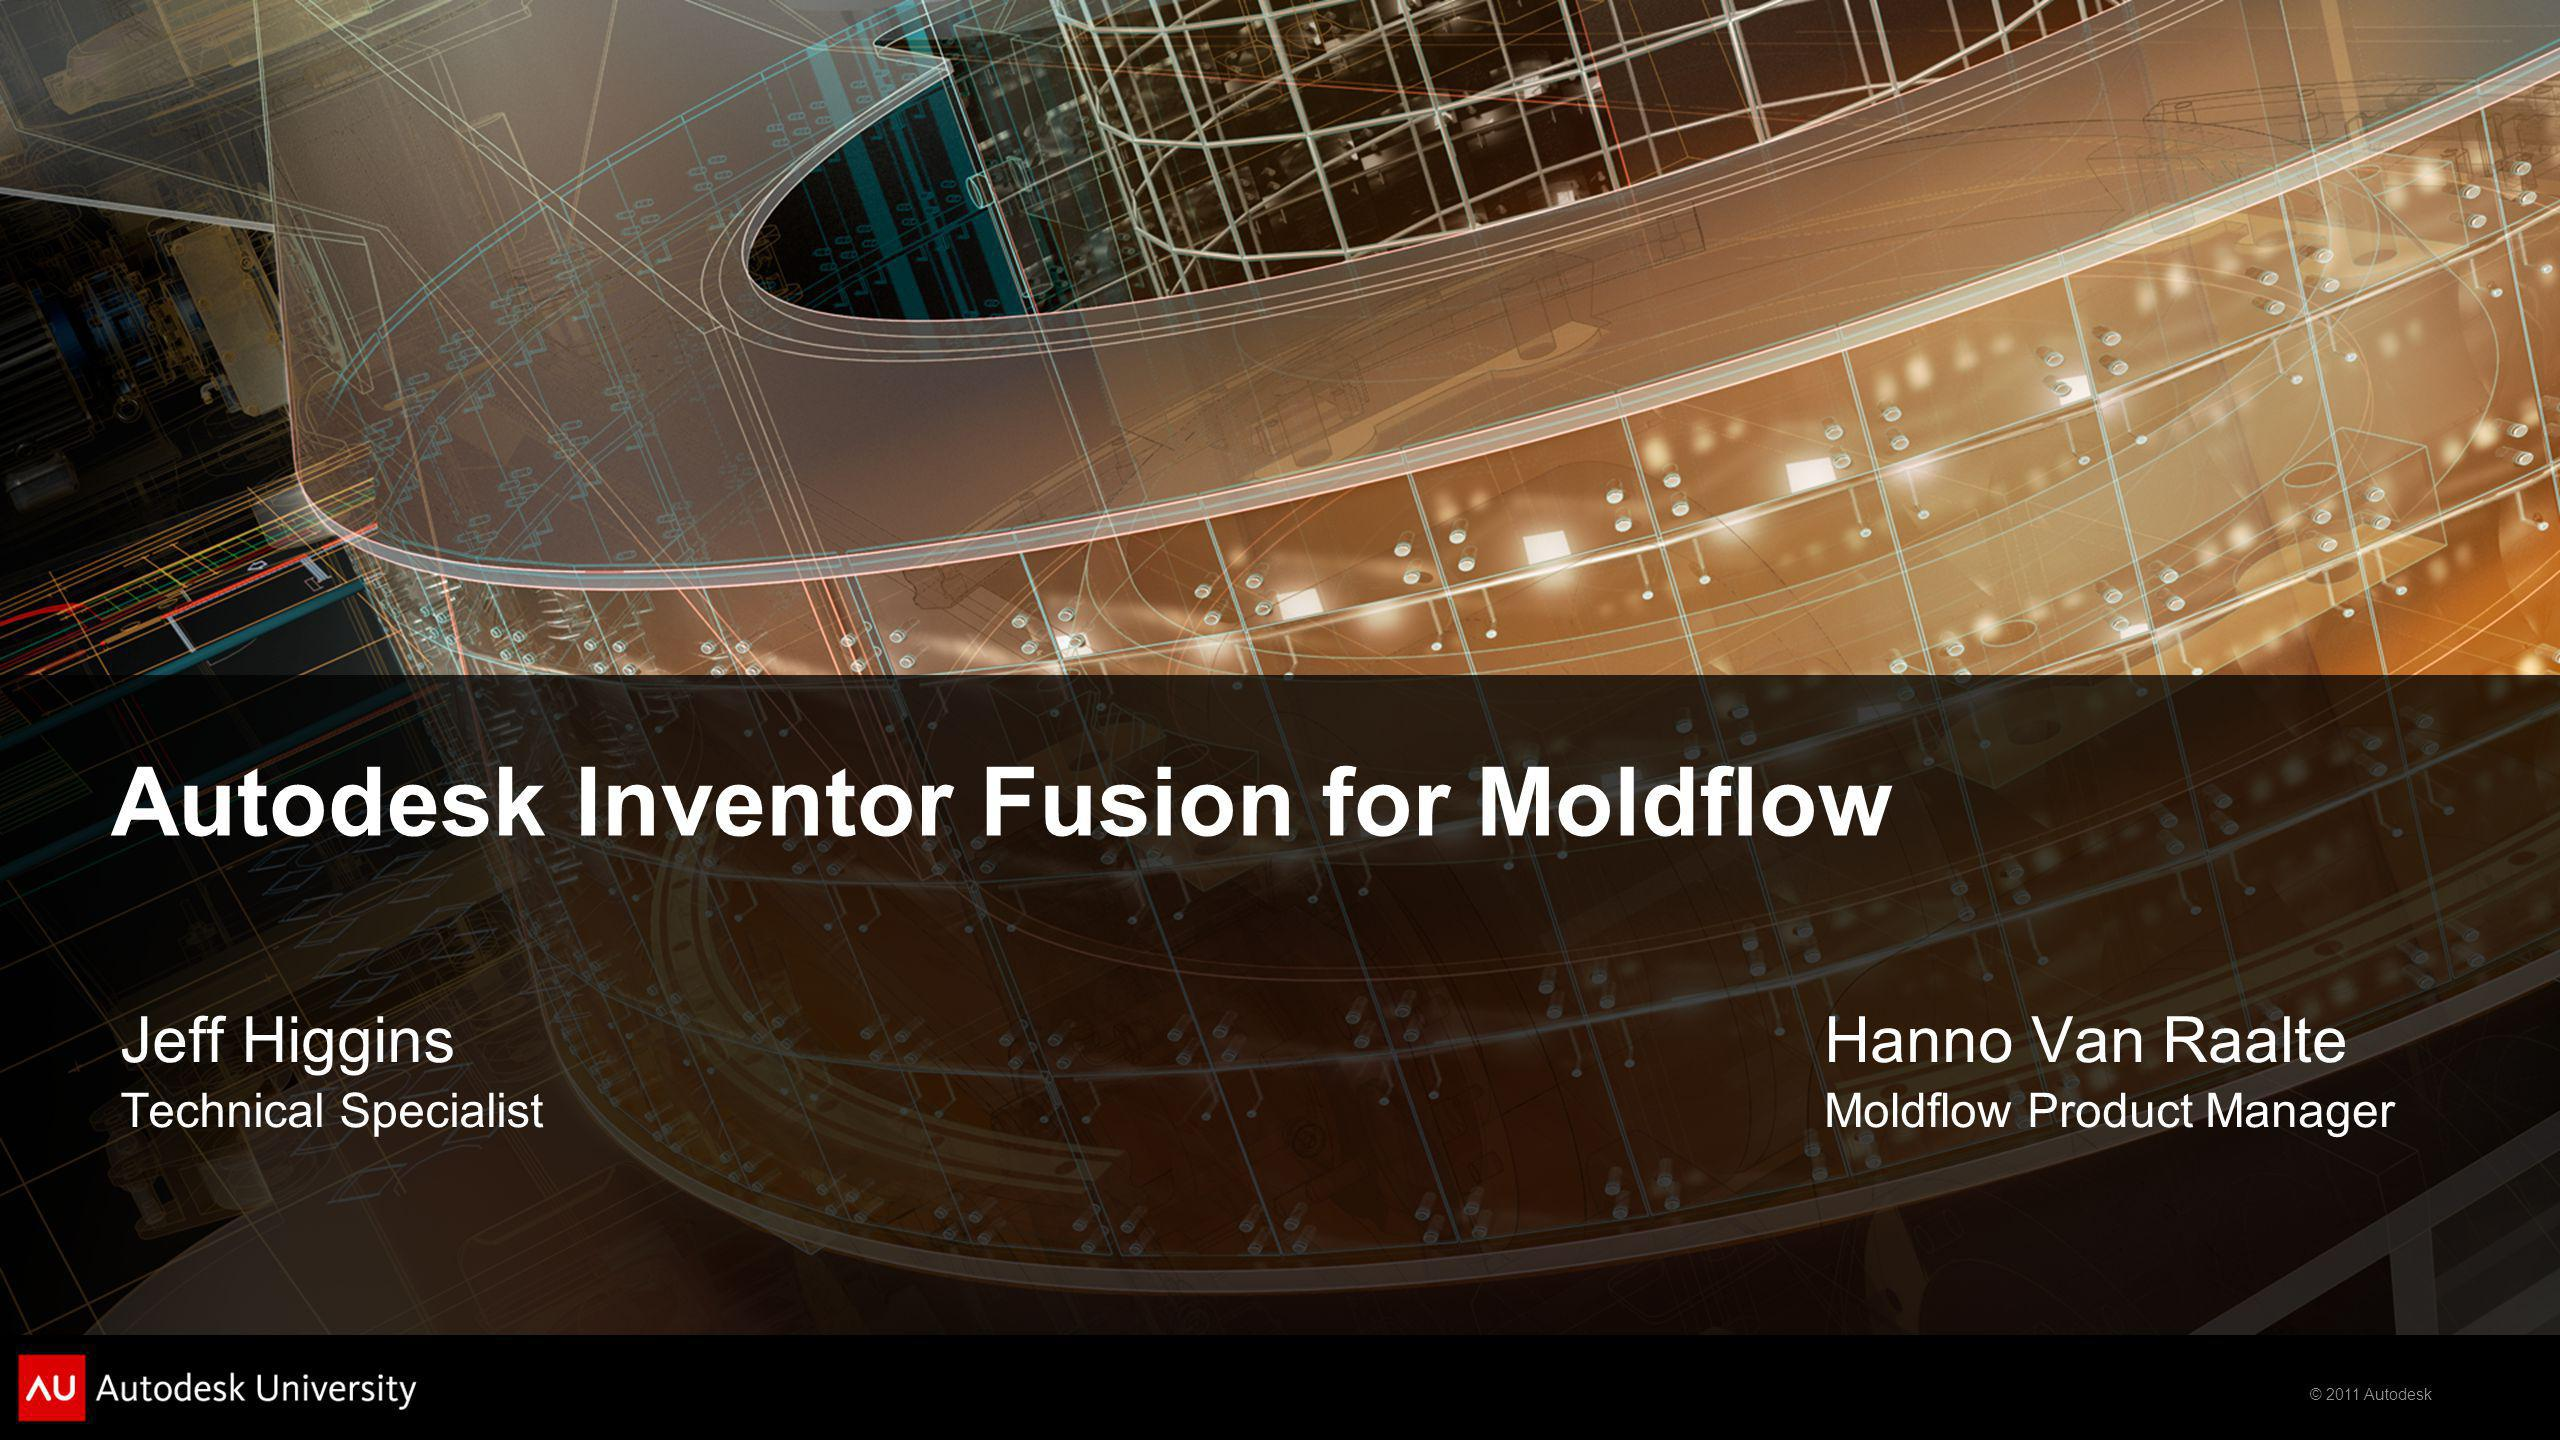 Autodesk Inventor Fusion for Moldflow